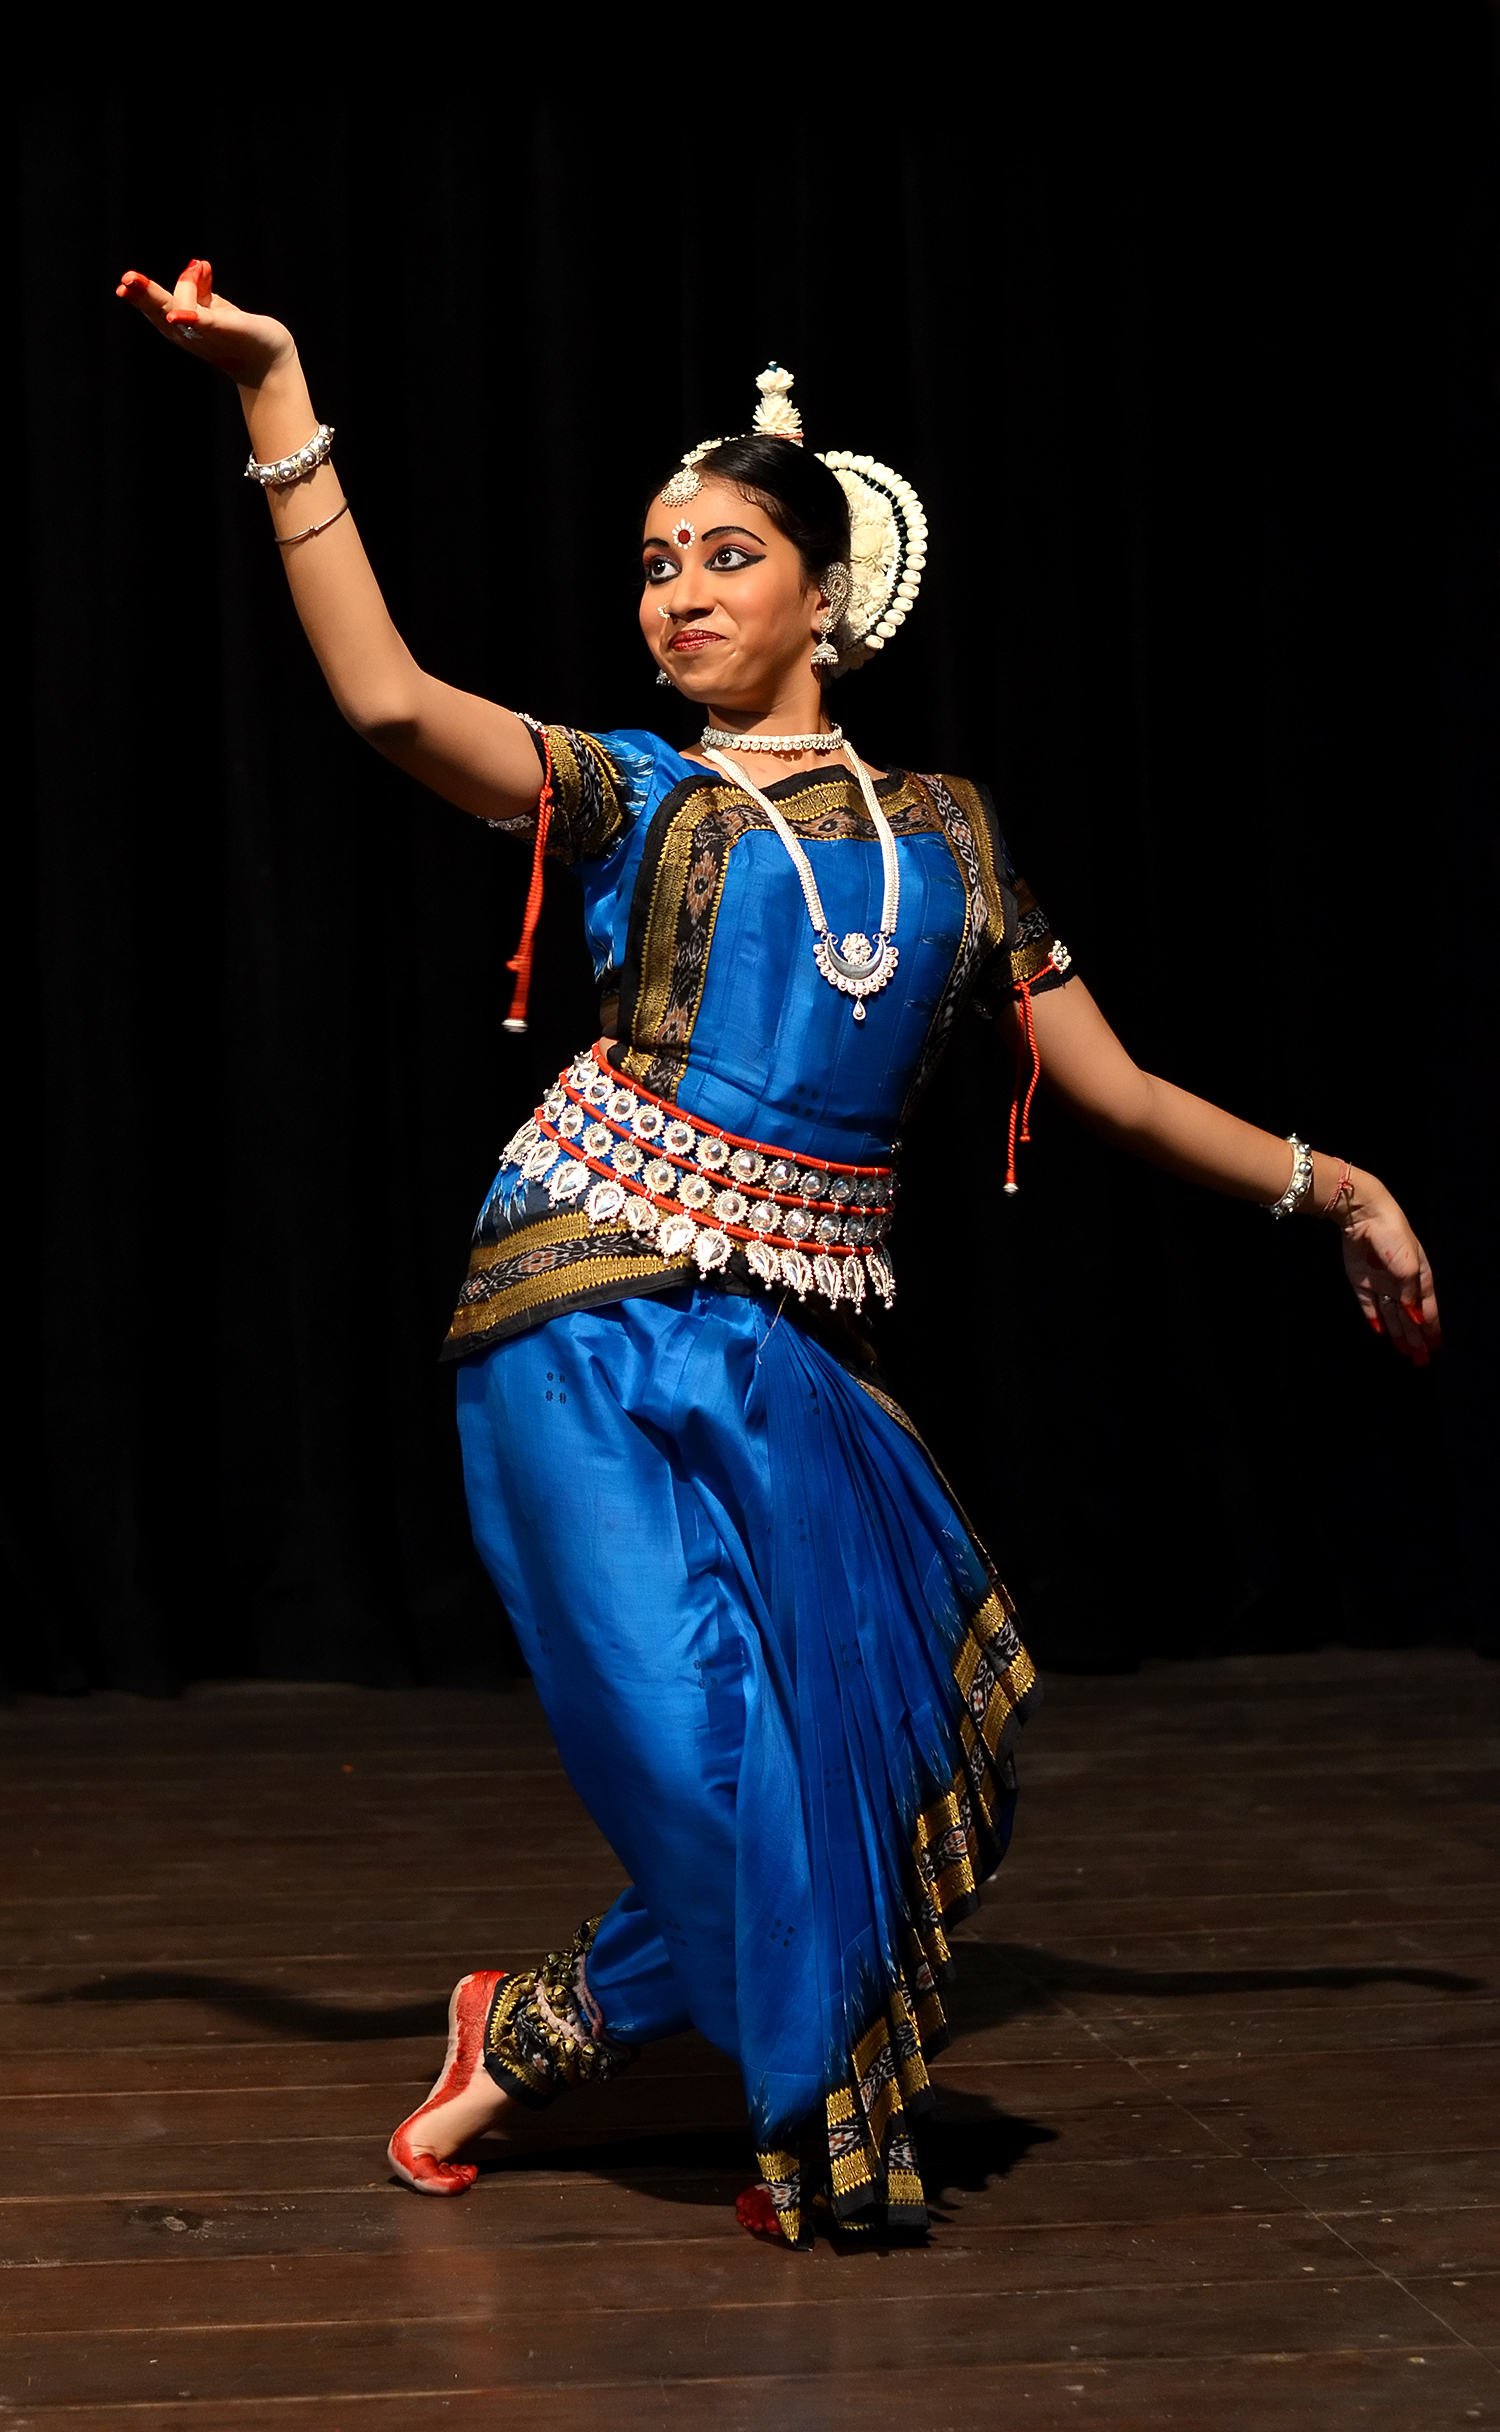 Bharatanatyam Indian dance